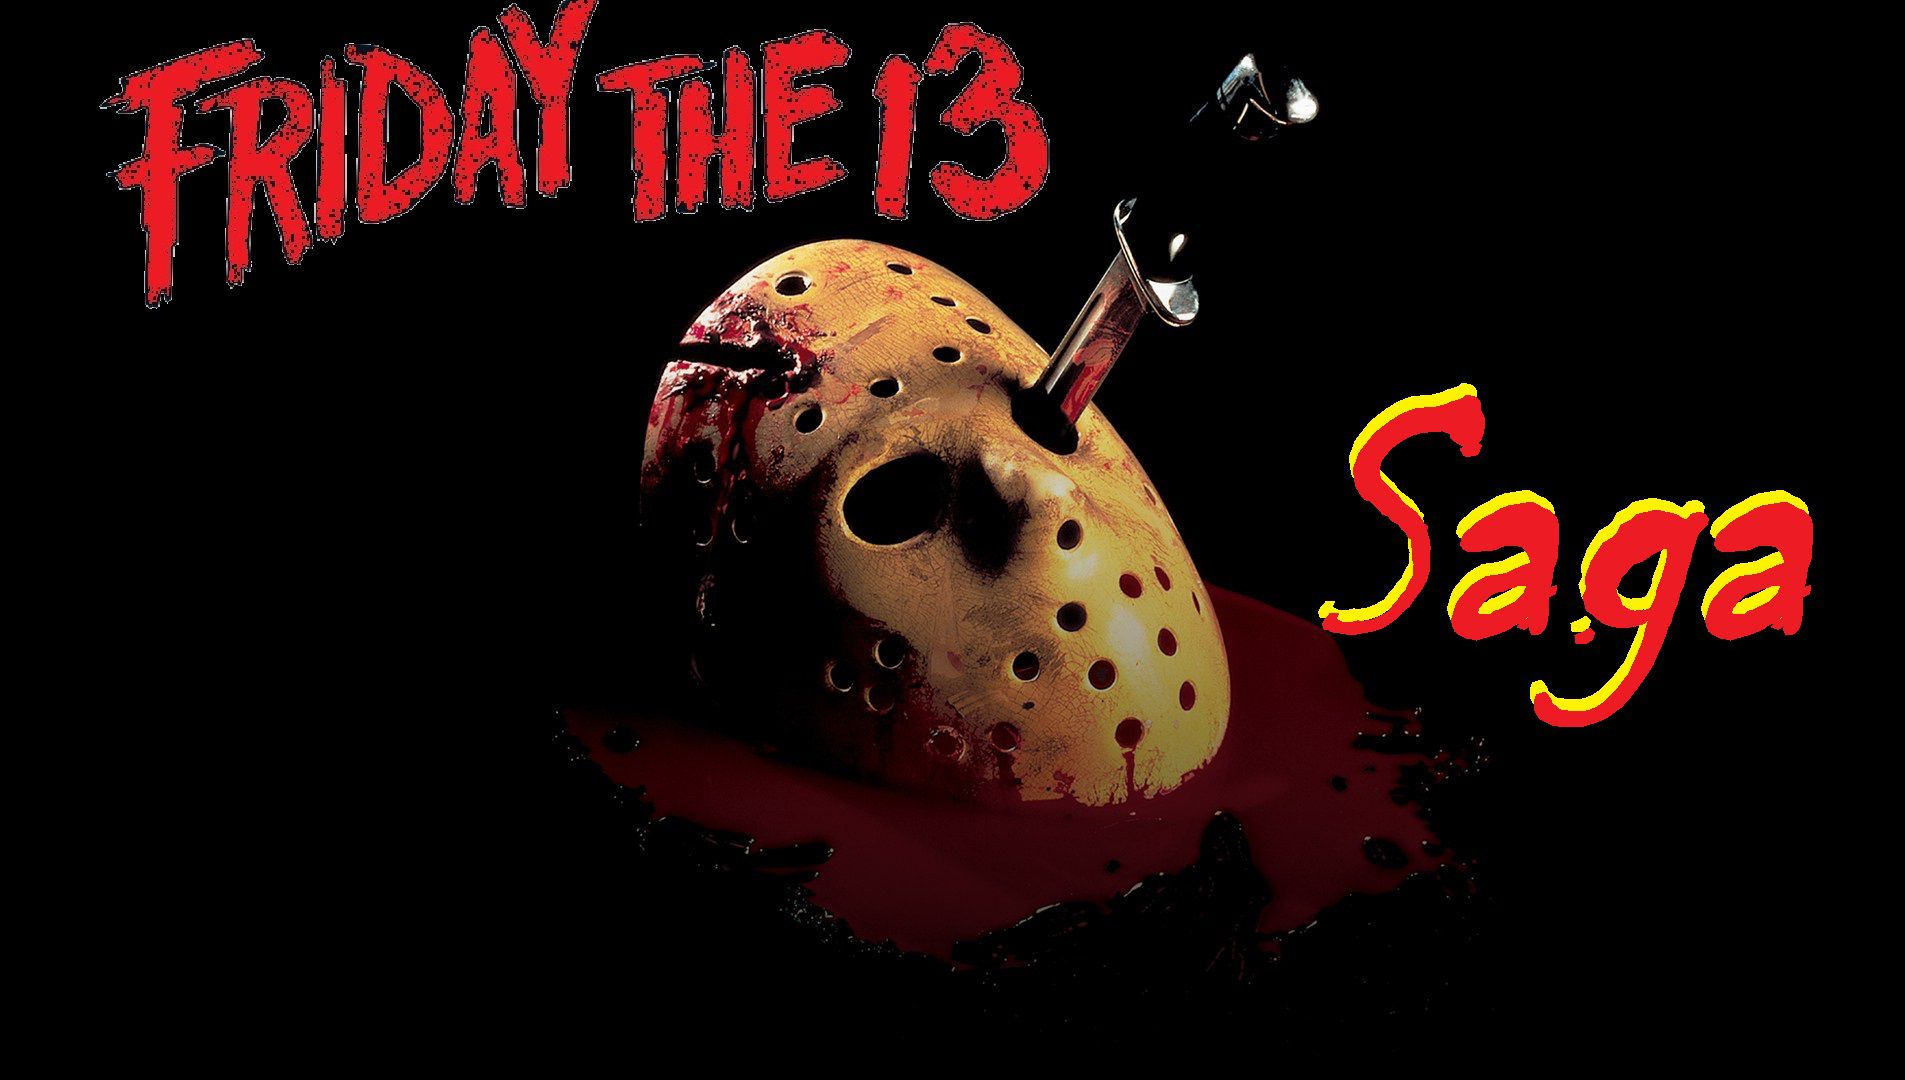 Friday the 13th Saga ... all screams